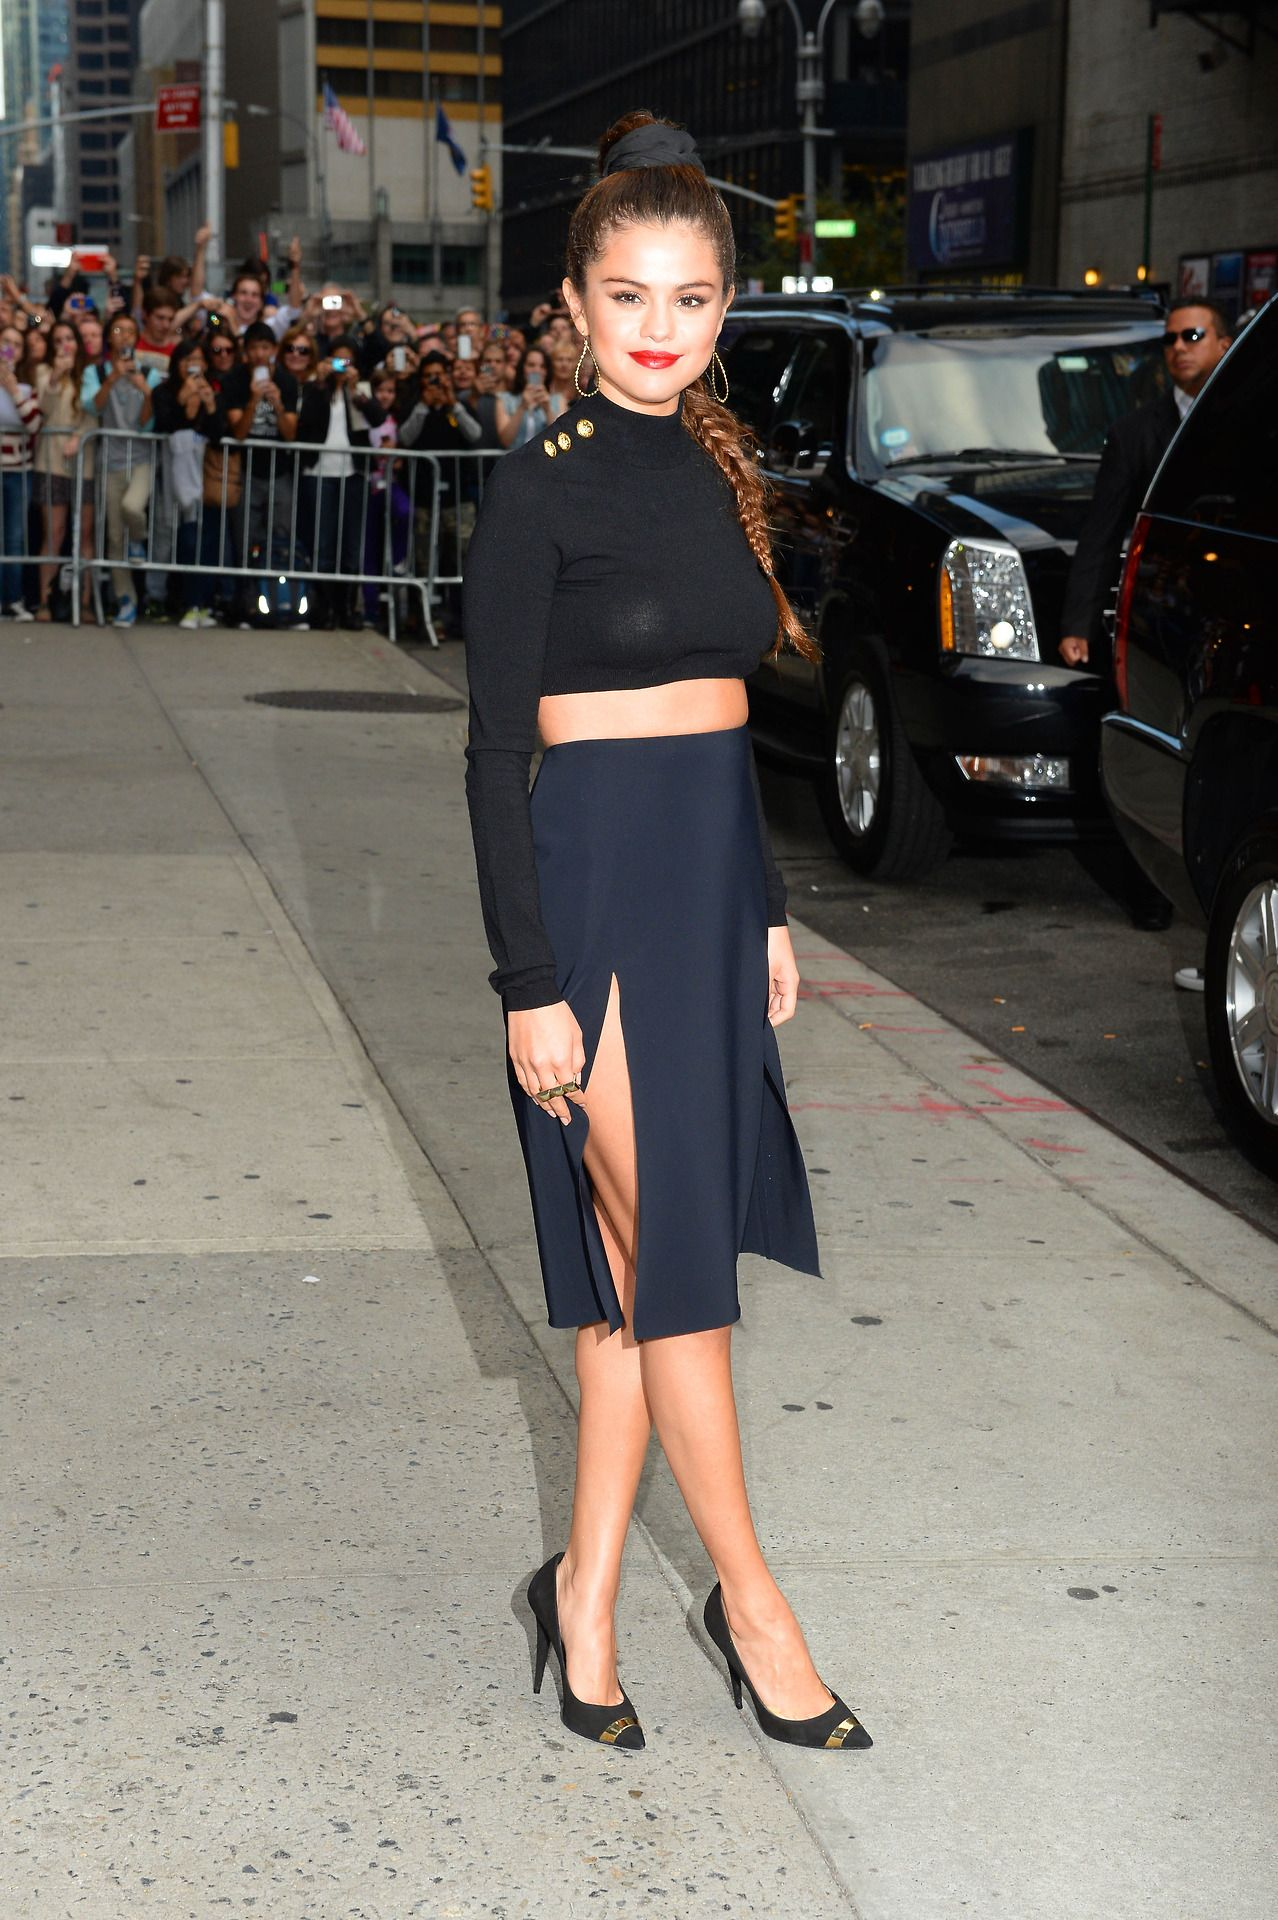 Selena Gomez stops by the 'Late Show with David Letterman' in New York City on October 17, 2013. 2